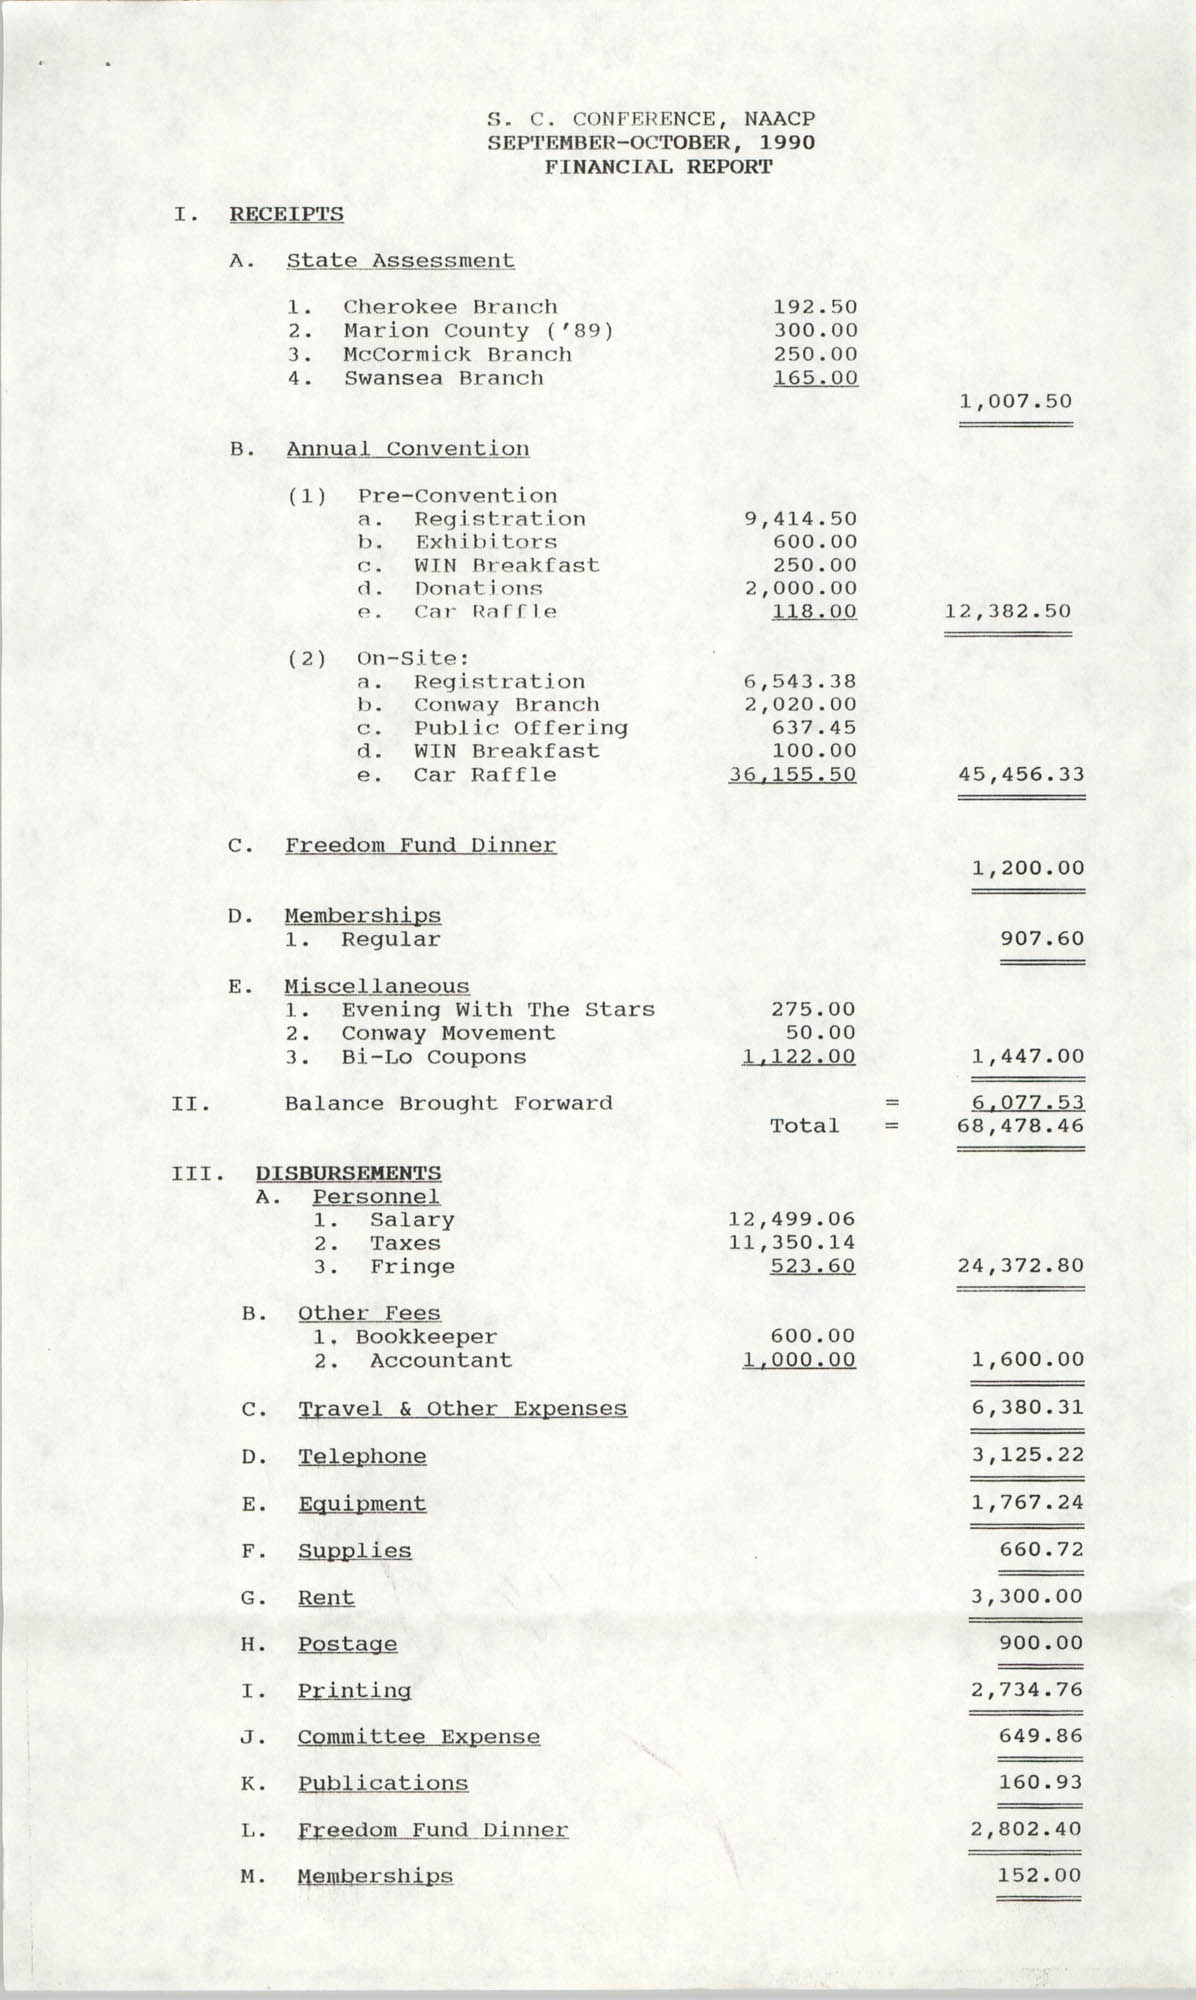 South Carolina Conference of Branches of the NAACP Financial Report, September to October 1990